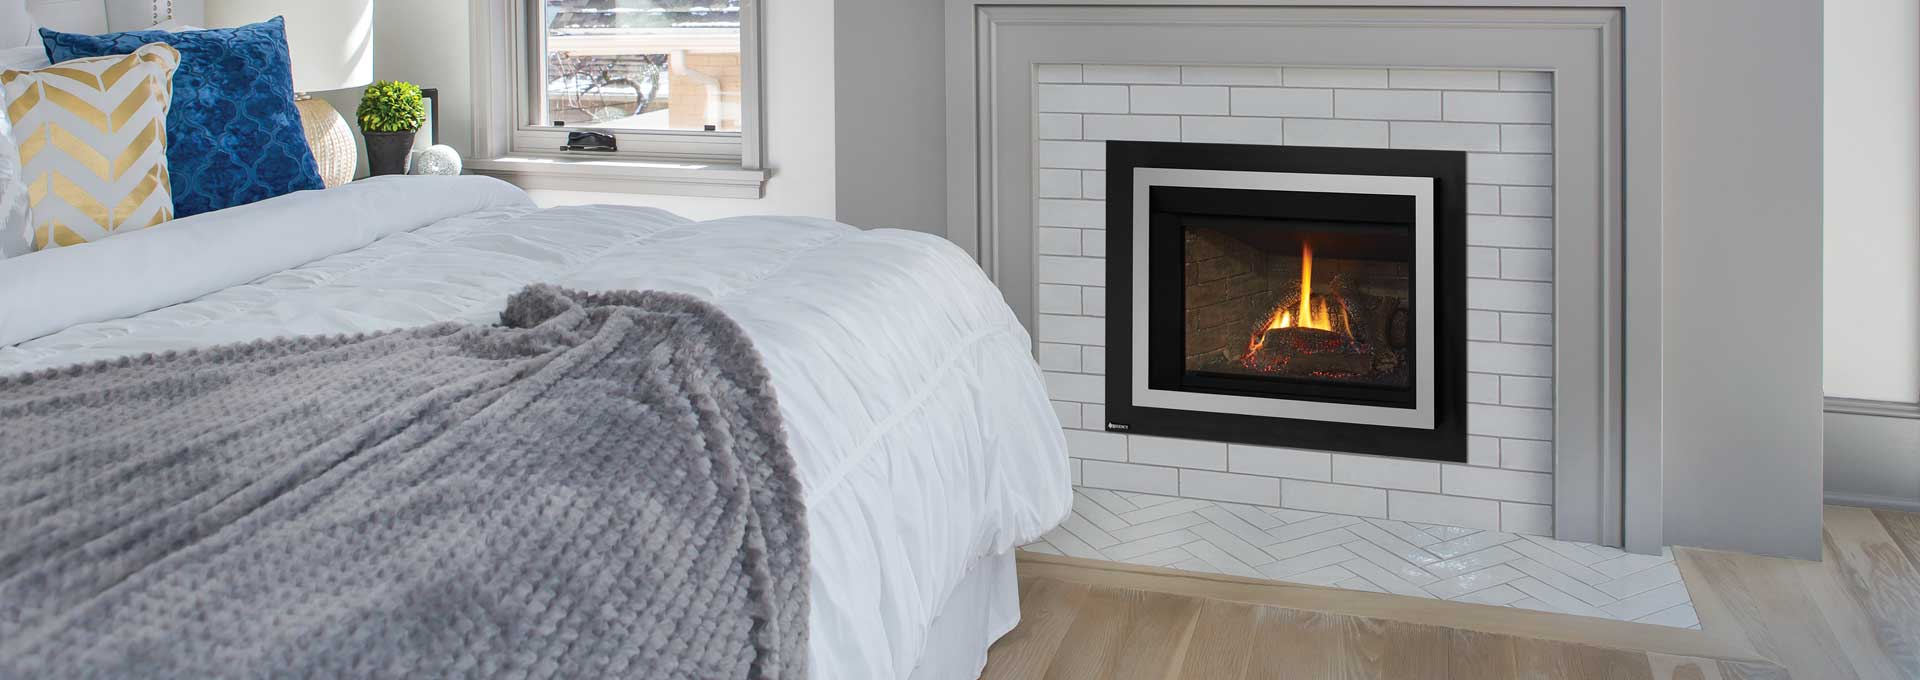 6 fireplace shopping tips